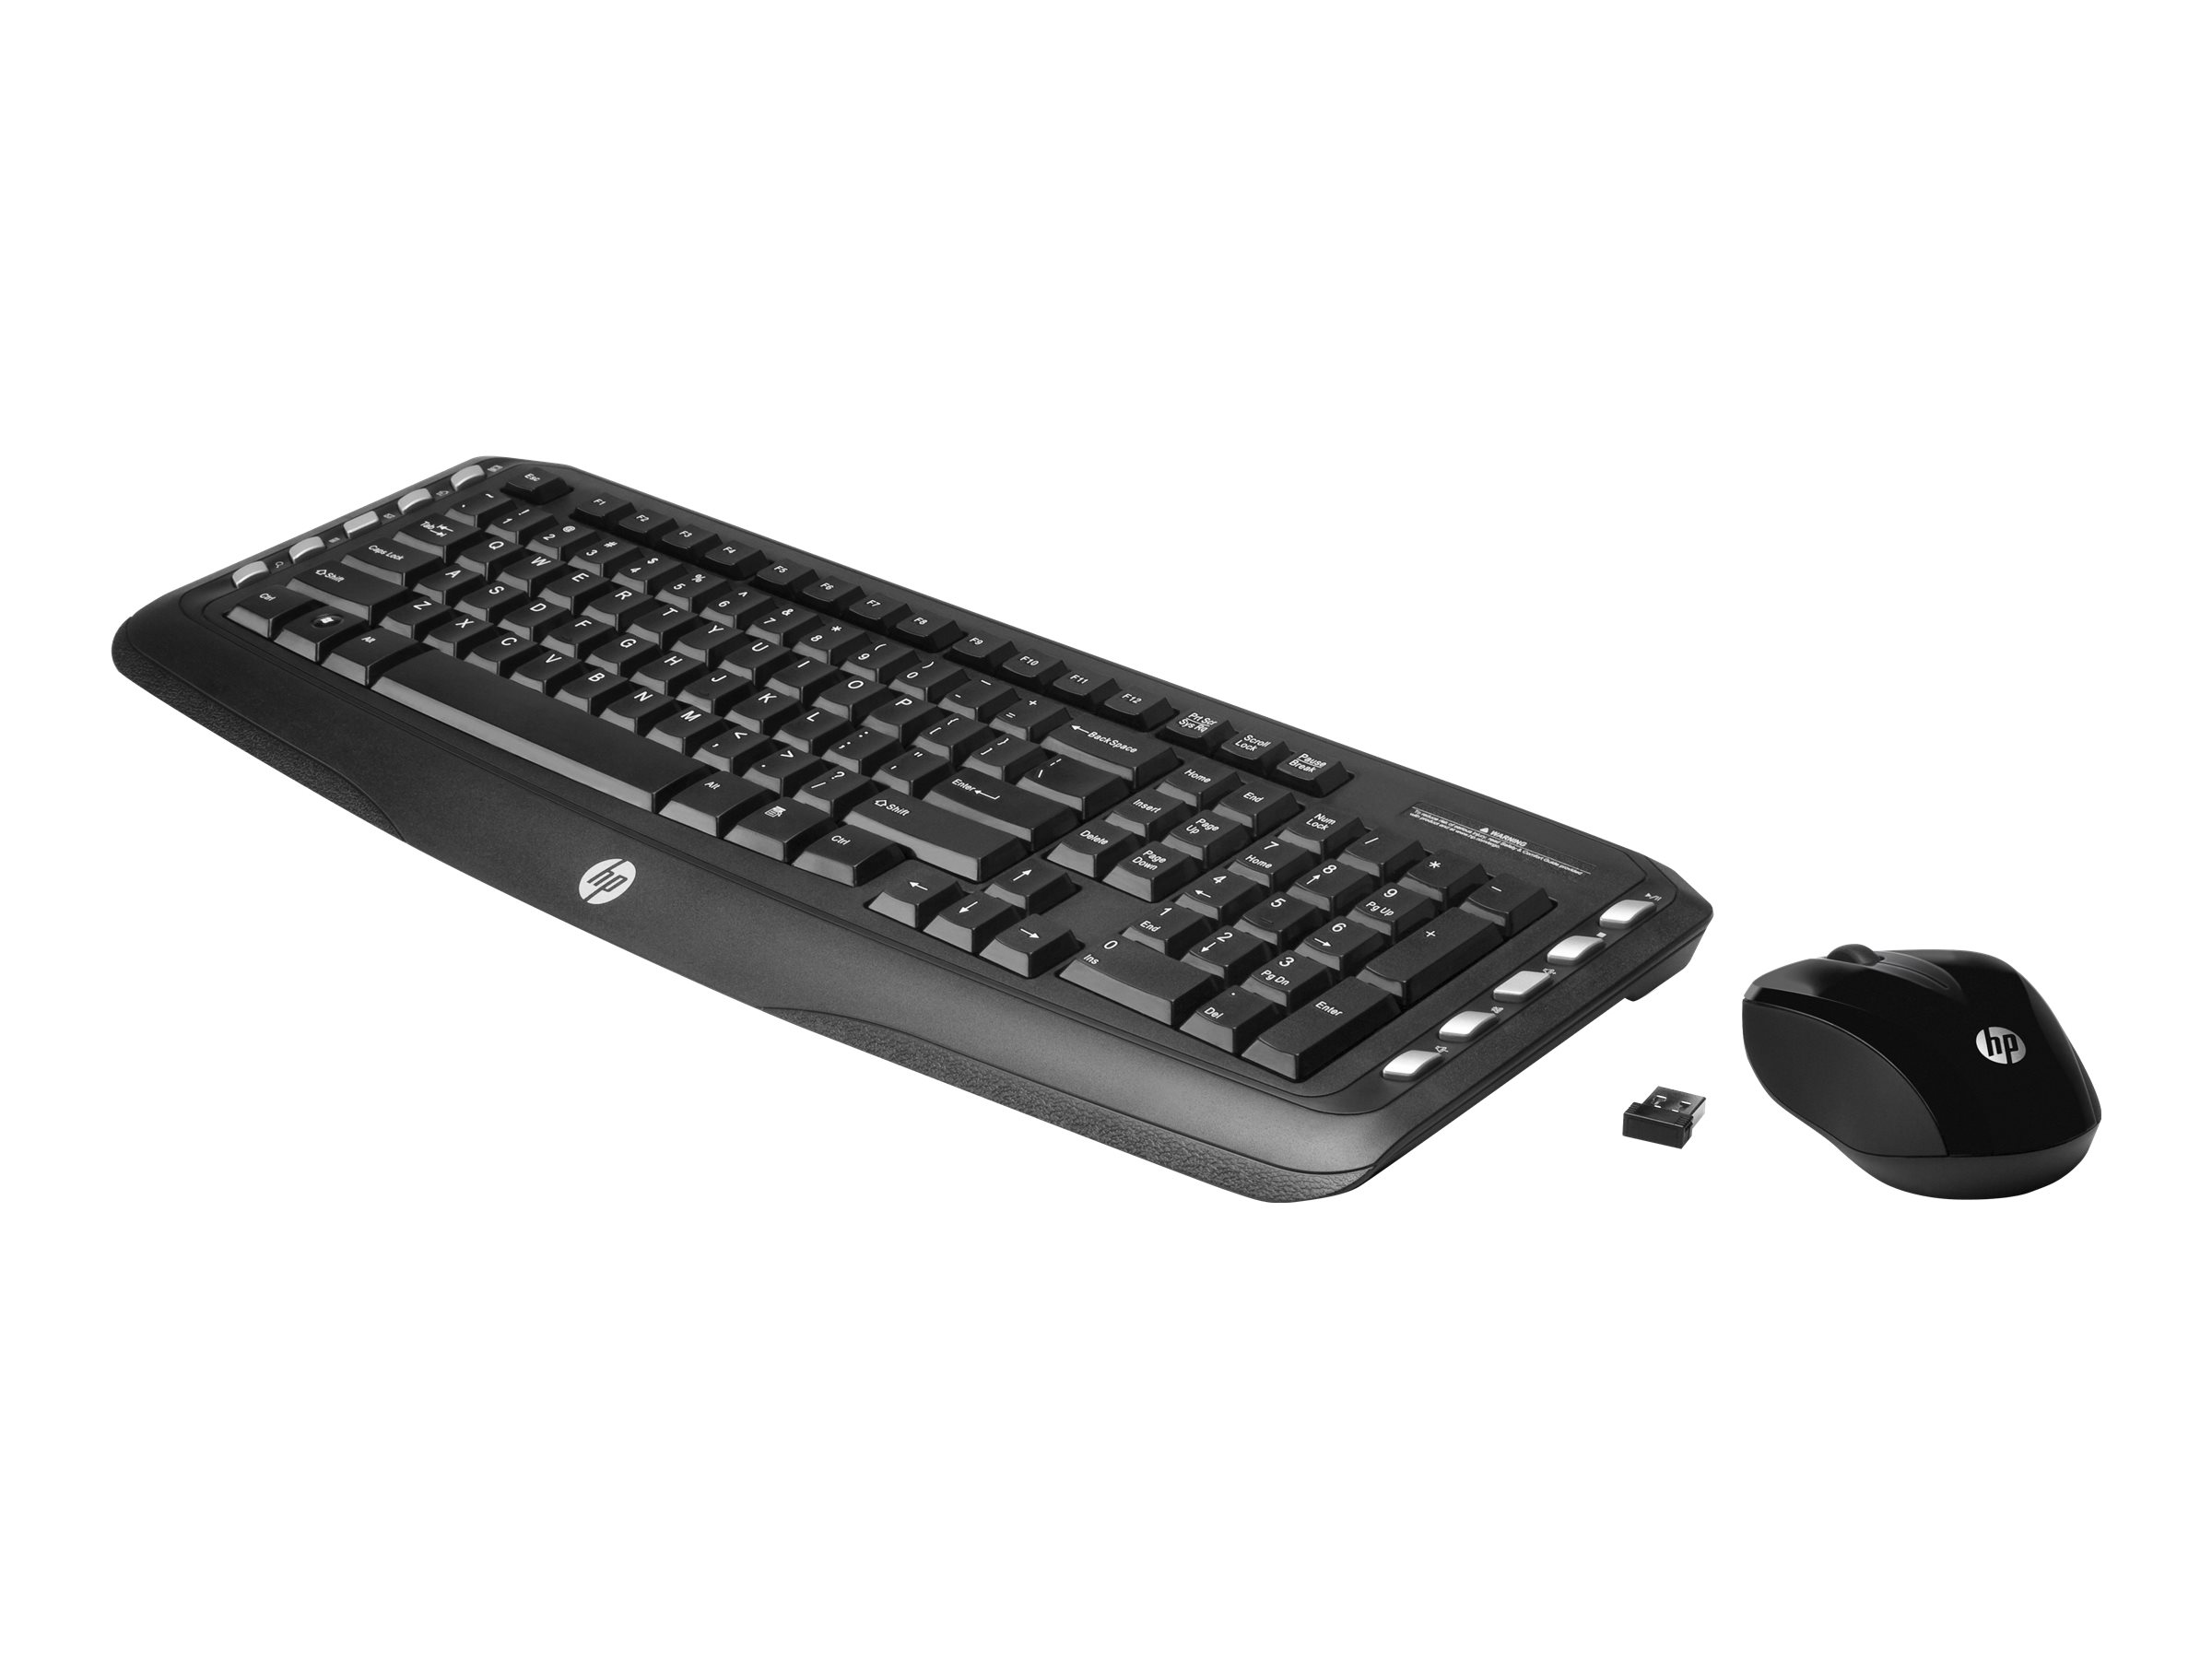 HP Classic Desktop - keyboard and mouse set - US